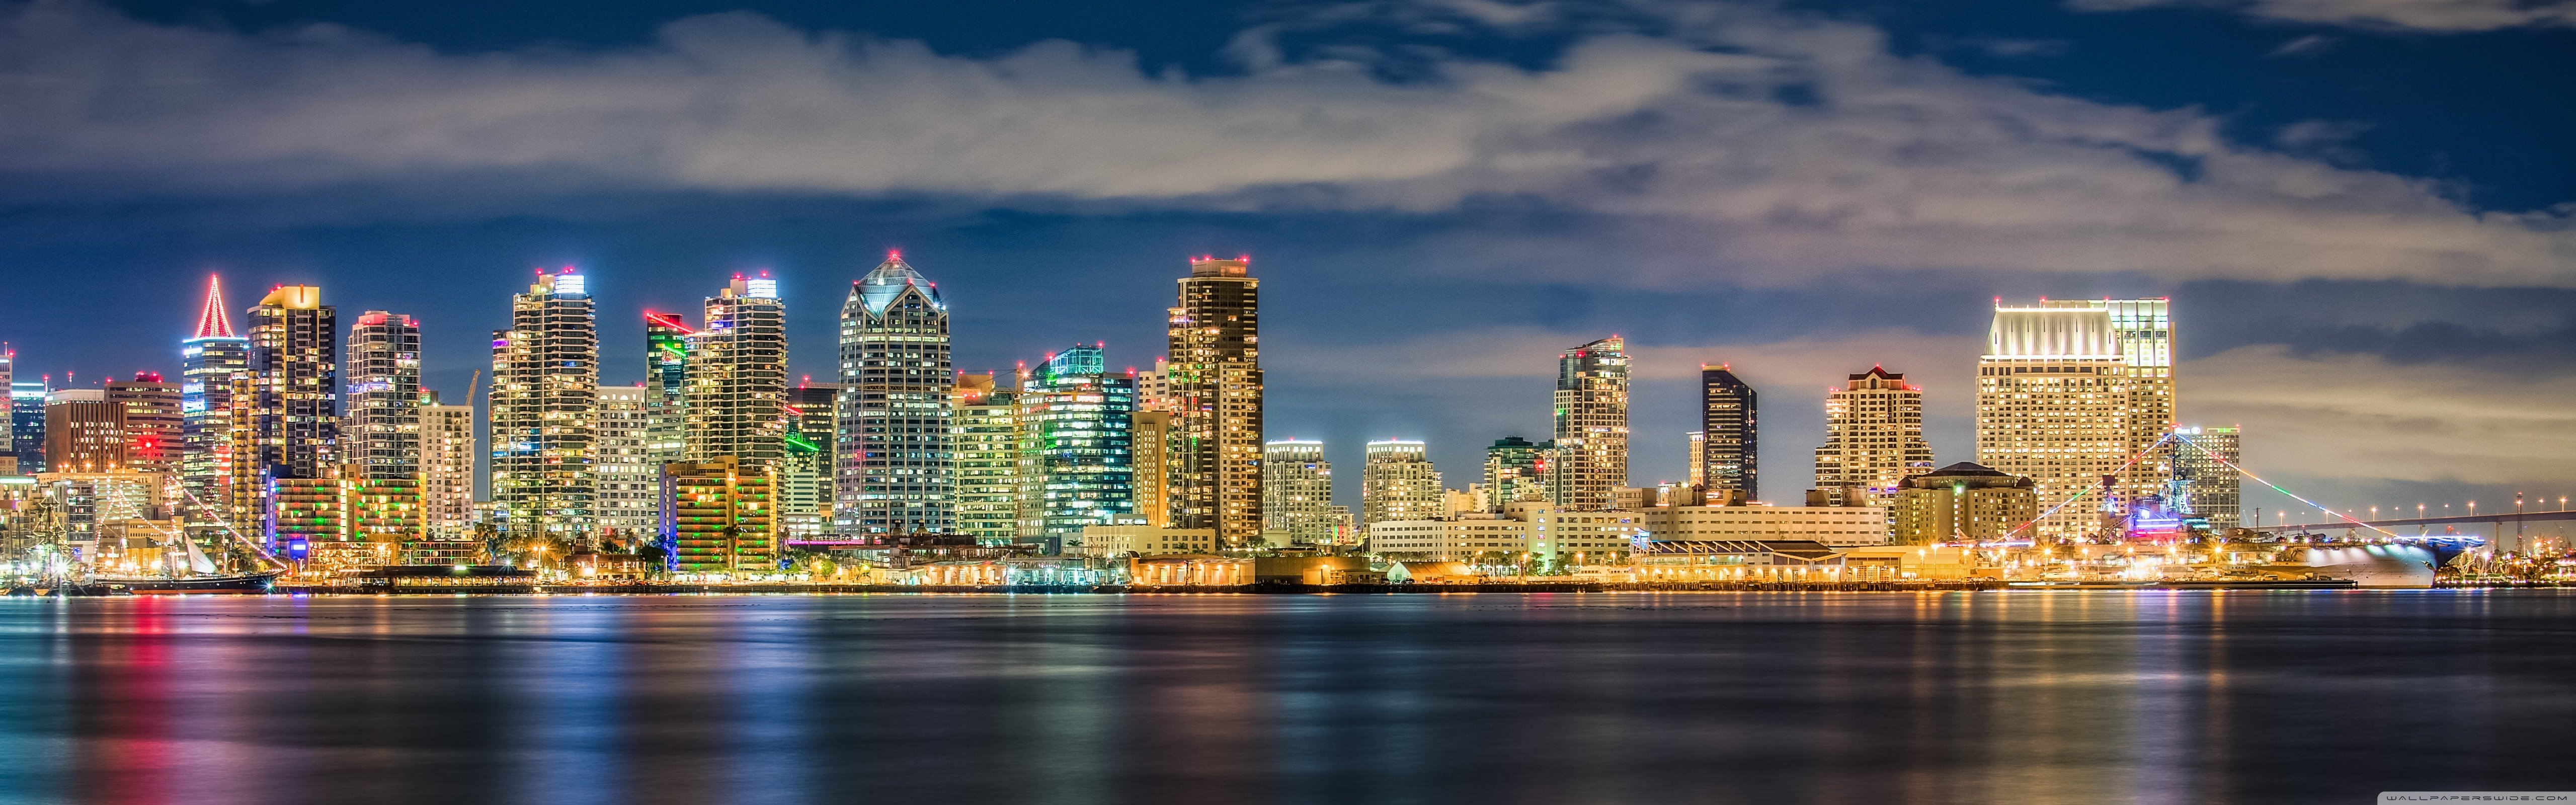 San Diego Beautiful 4K HD Desktop Wallpaper for 4K Ultra HD TV 5120x1600